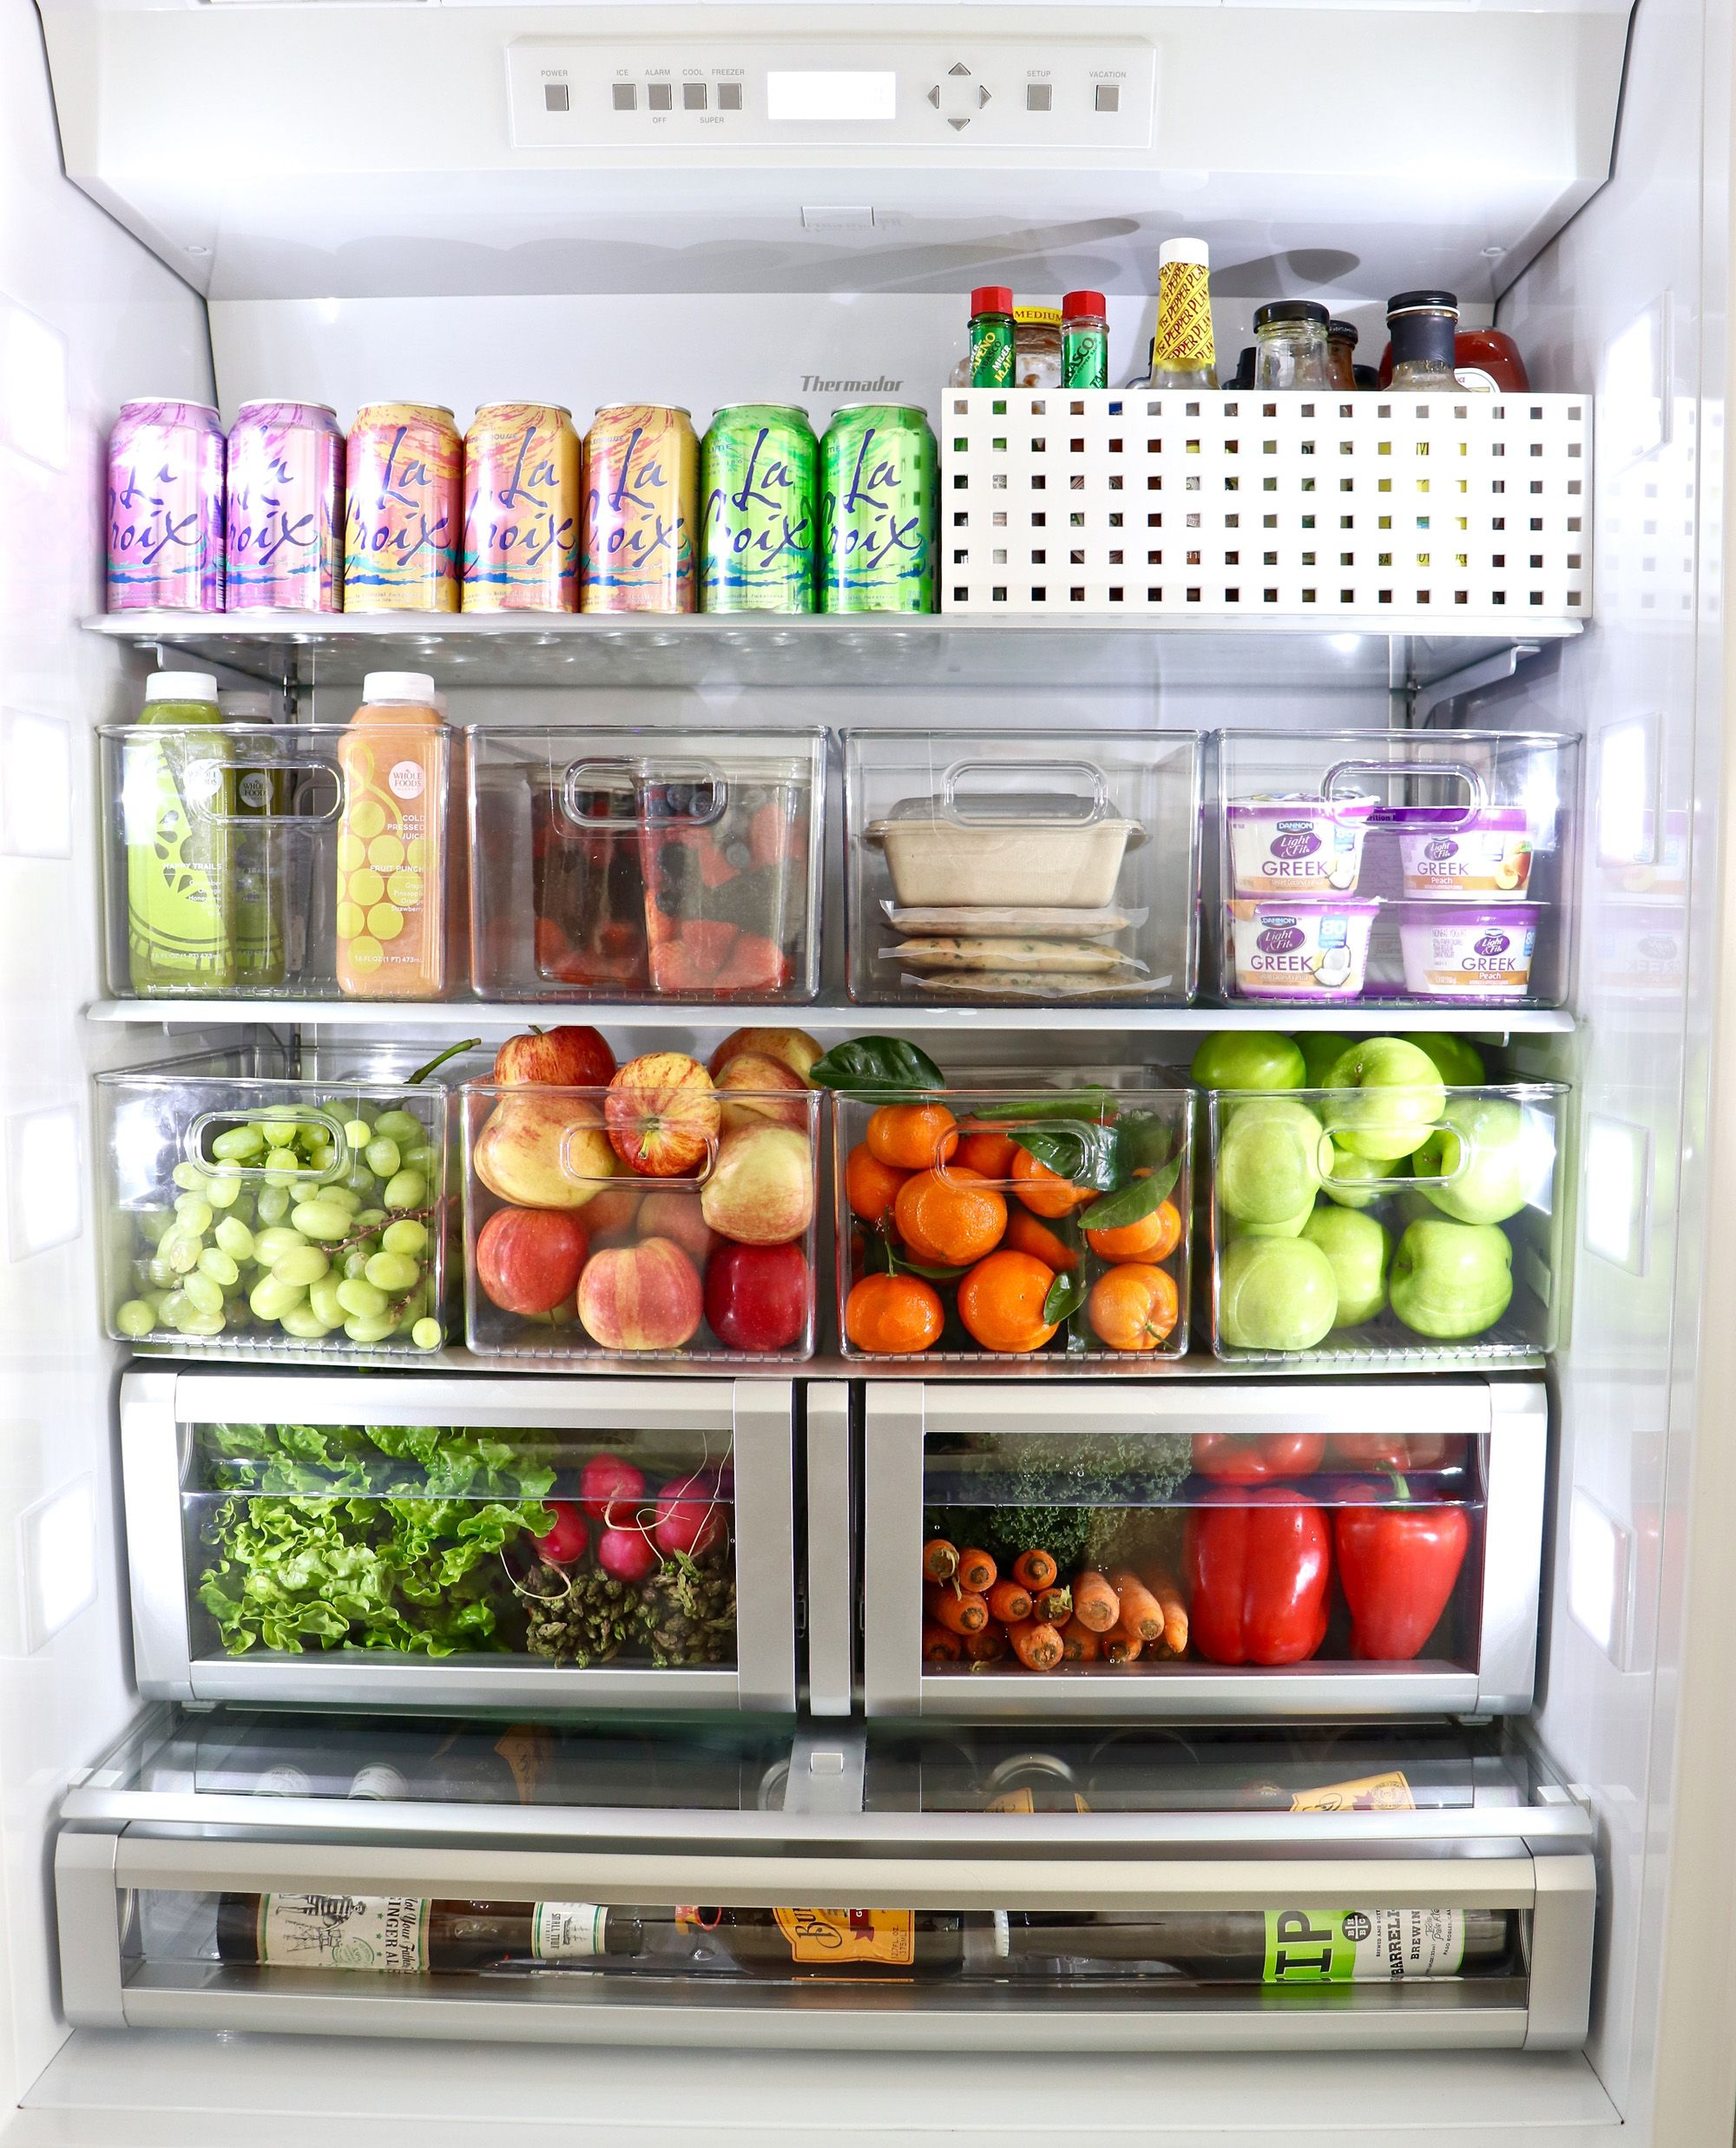 10 Tips To Organize Your Refrigerator With Inspiring Before After Photos Kitchen Organization Fridge Organization Refrigerator Organization